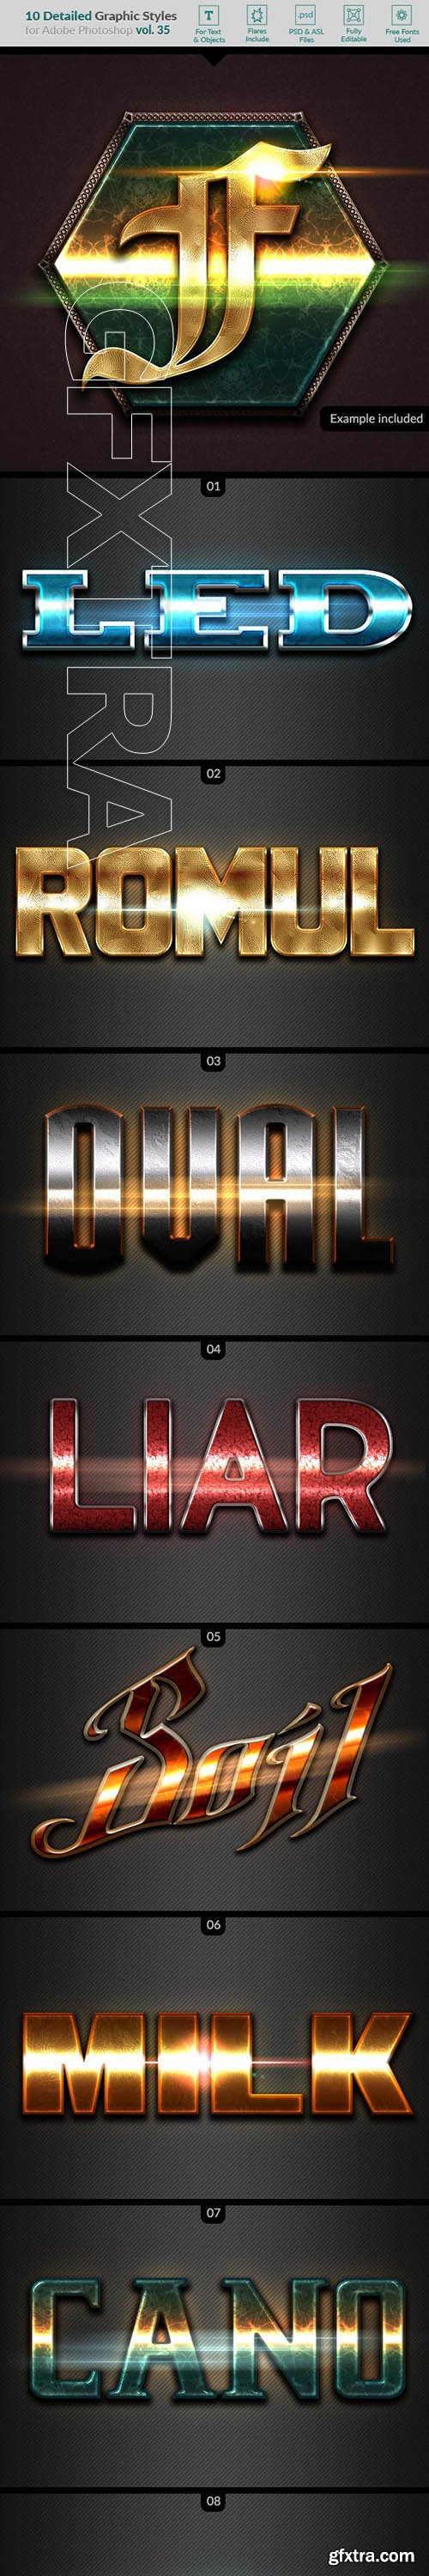 GraphicRiver - 10 Text Effects Vol 35 22986730